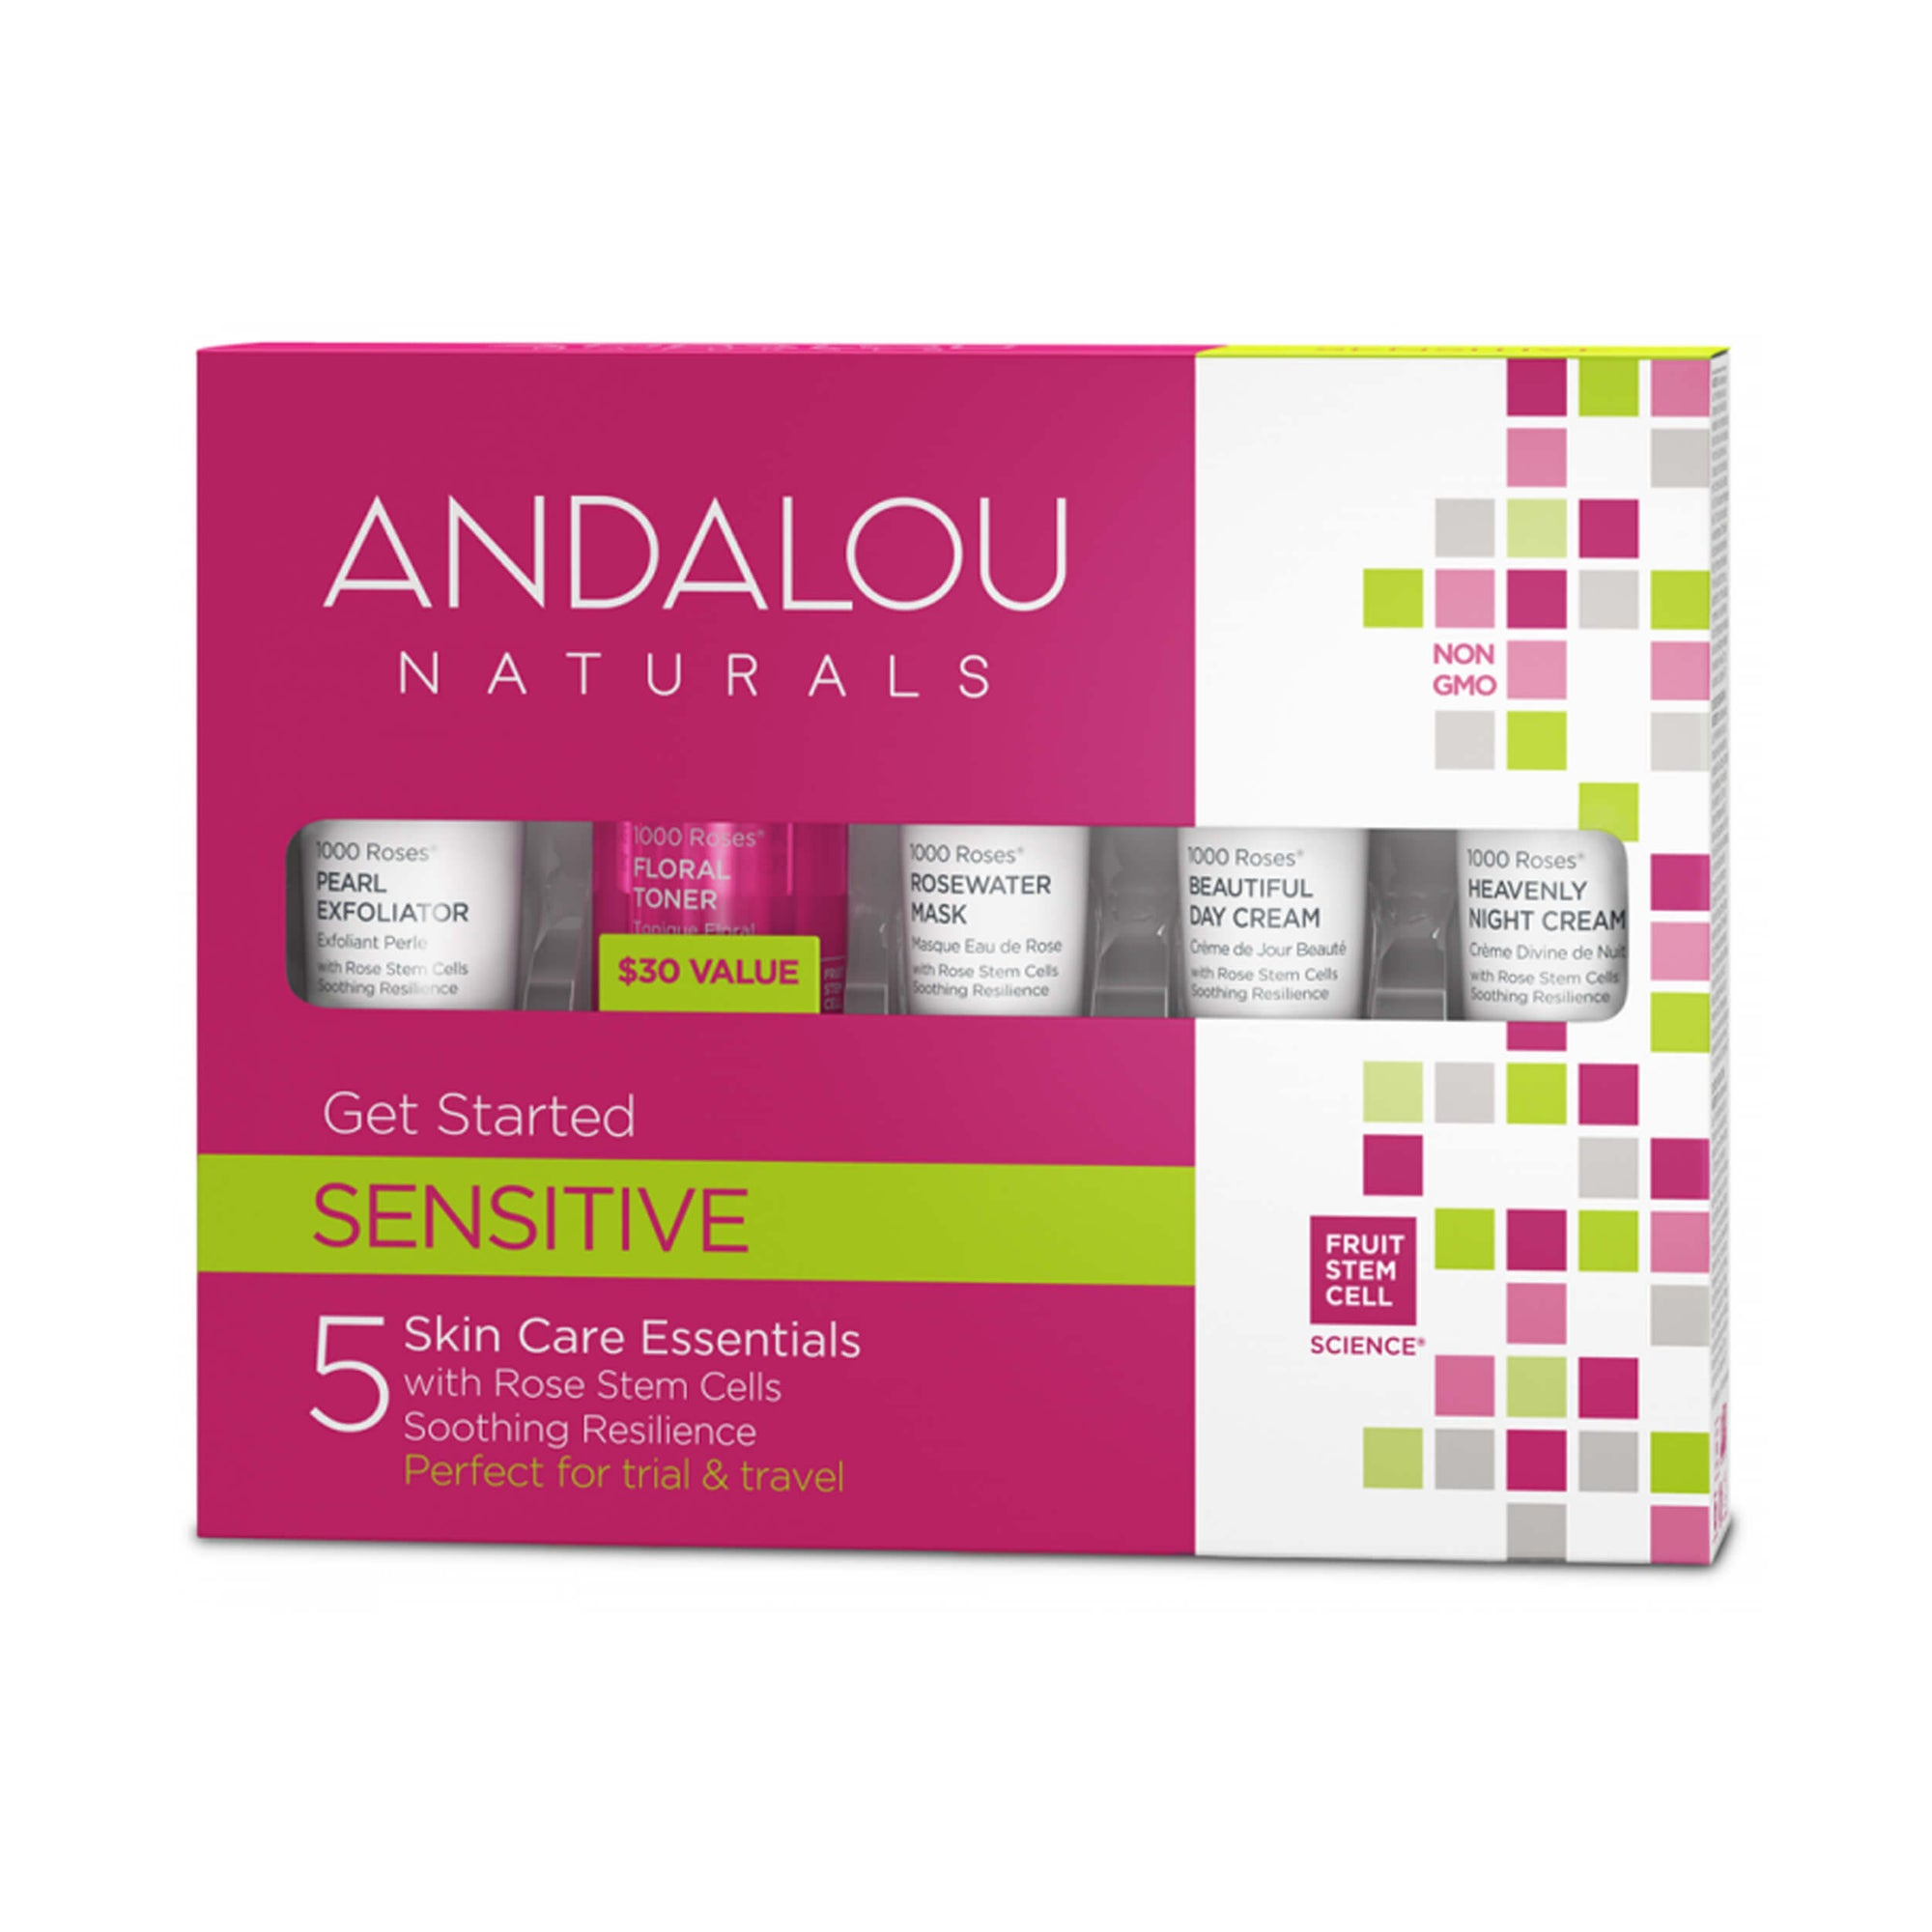 Andalou Naturals 1000 Roses Get Started Kit